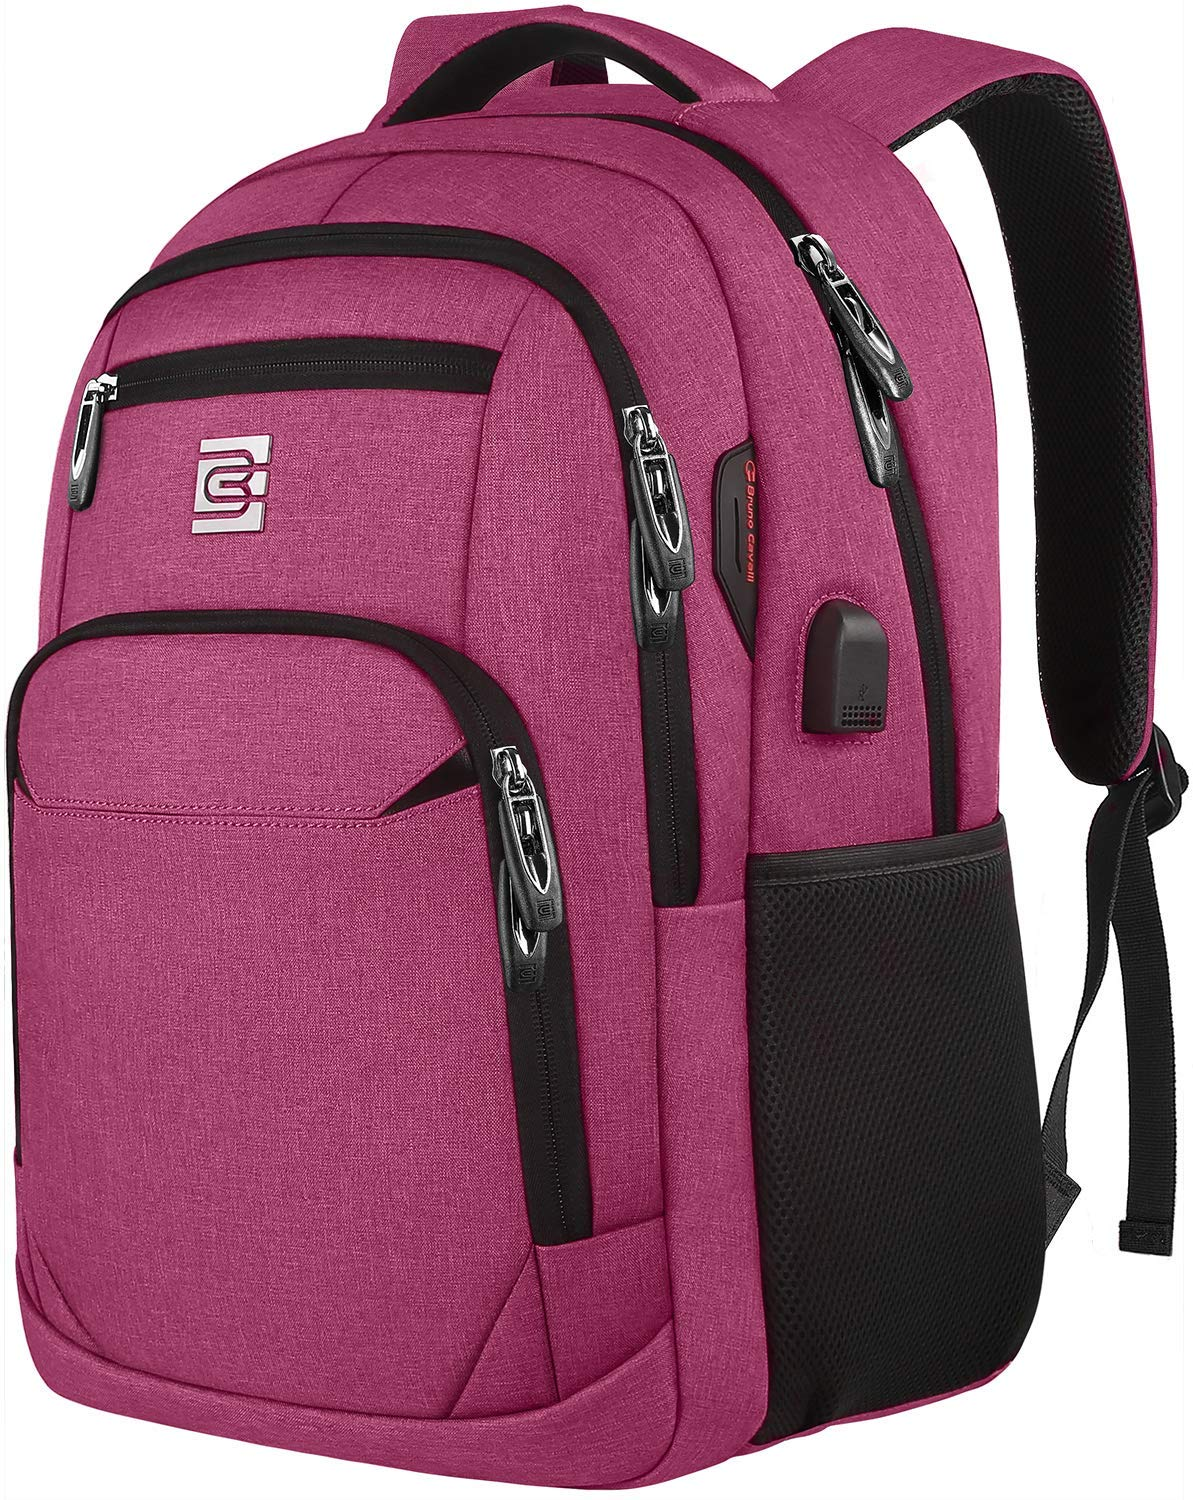 best waterproof backpack for college students